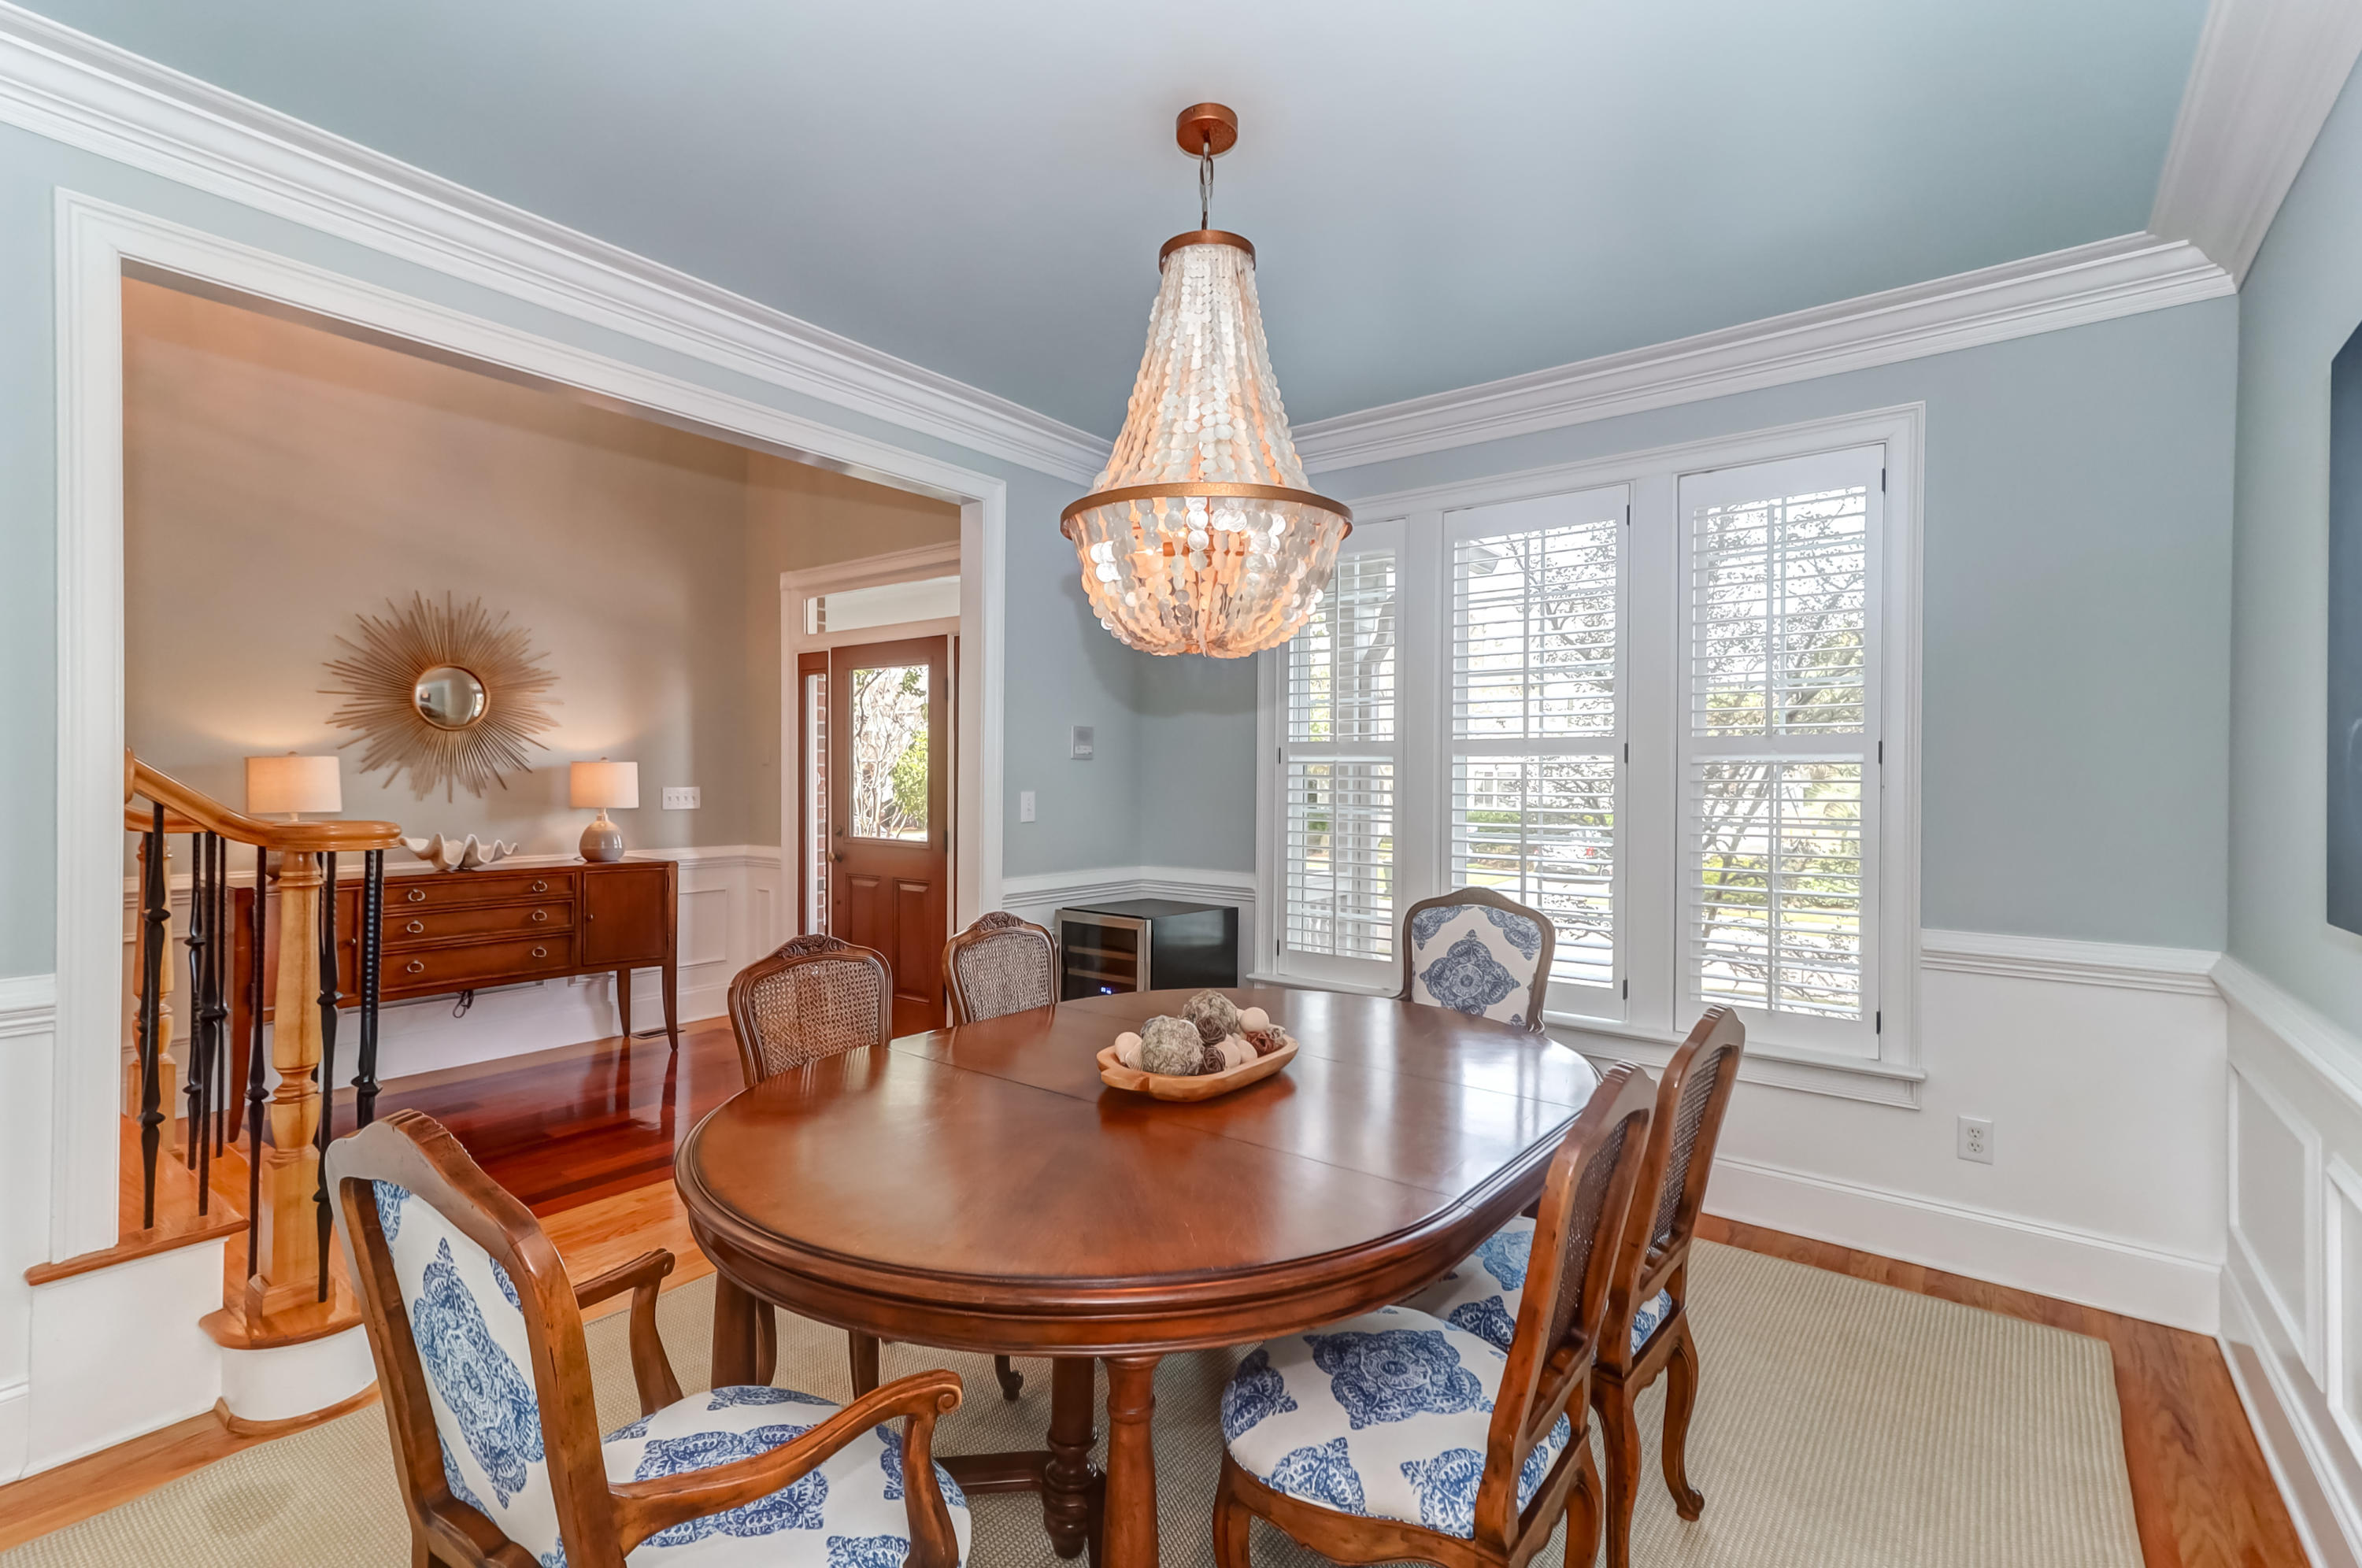 Woodward Pointe Homes For Sale - 657 White Chapel, Charleston, SC - 56